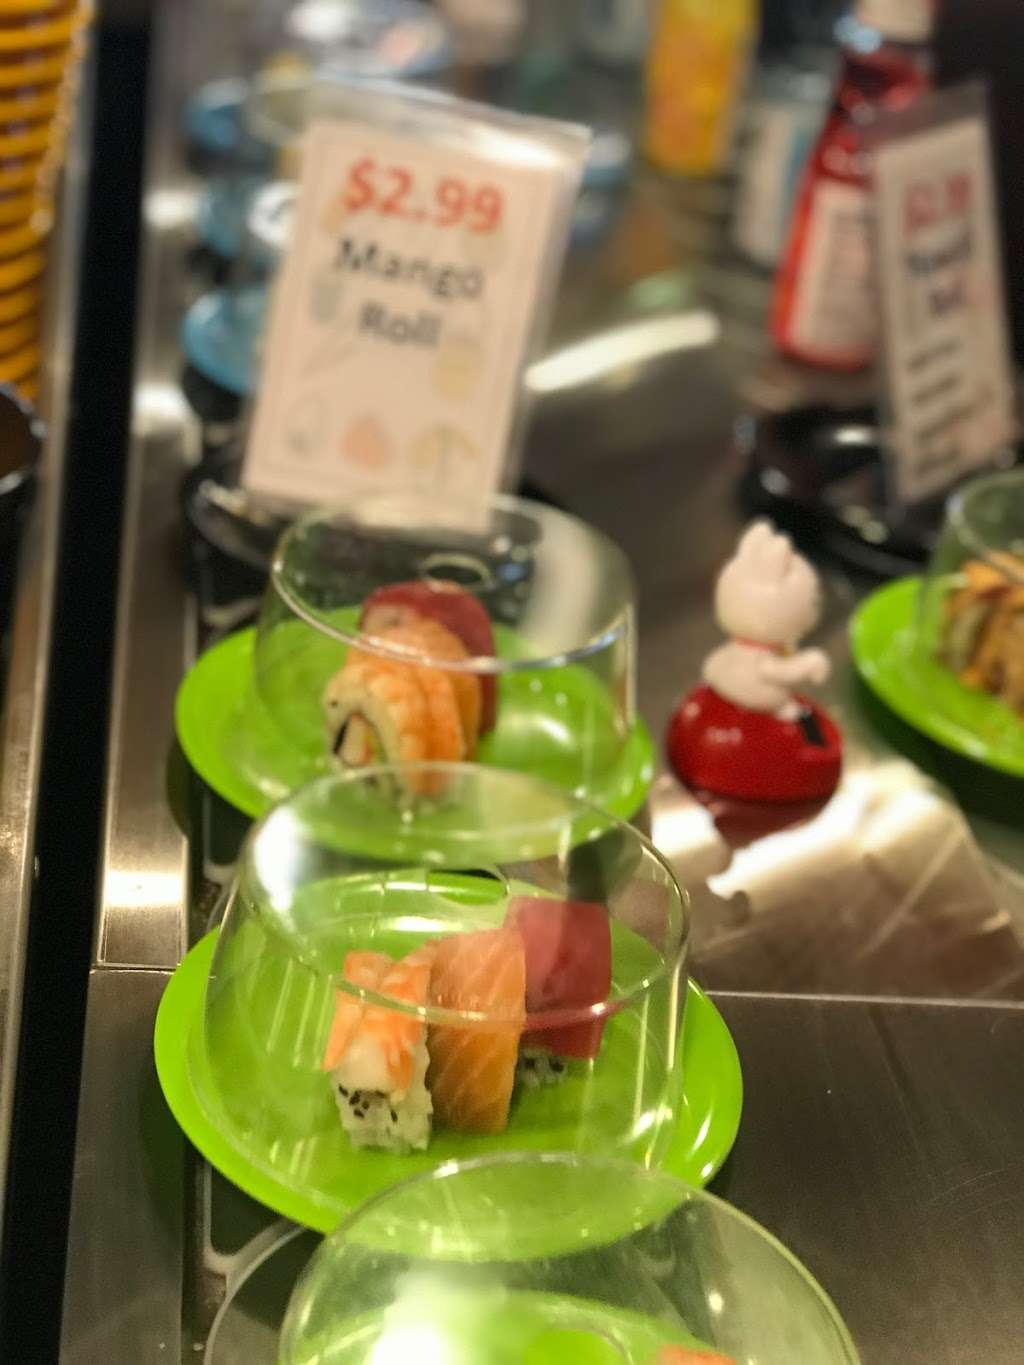 Sushi Station Revolving Sushi Bar 2223 Louisiana St Lawrence Ks 66046 Usa Is a revolving sushi bar restaurant in business at 9 locations in california and is continuing to expand nationwide. sushi station revolving sushi bar 2223